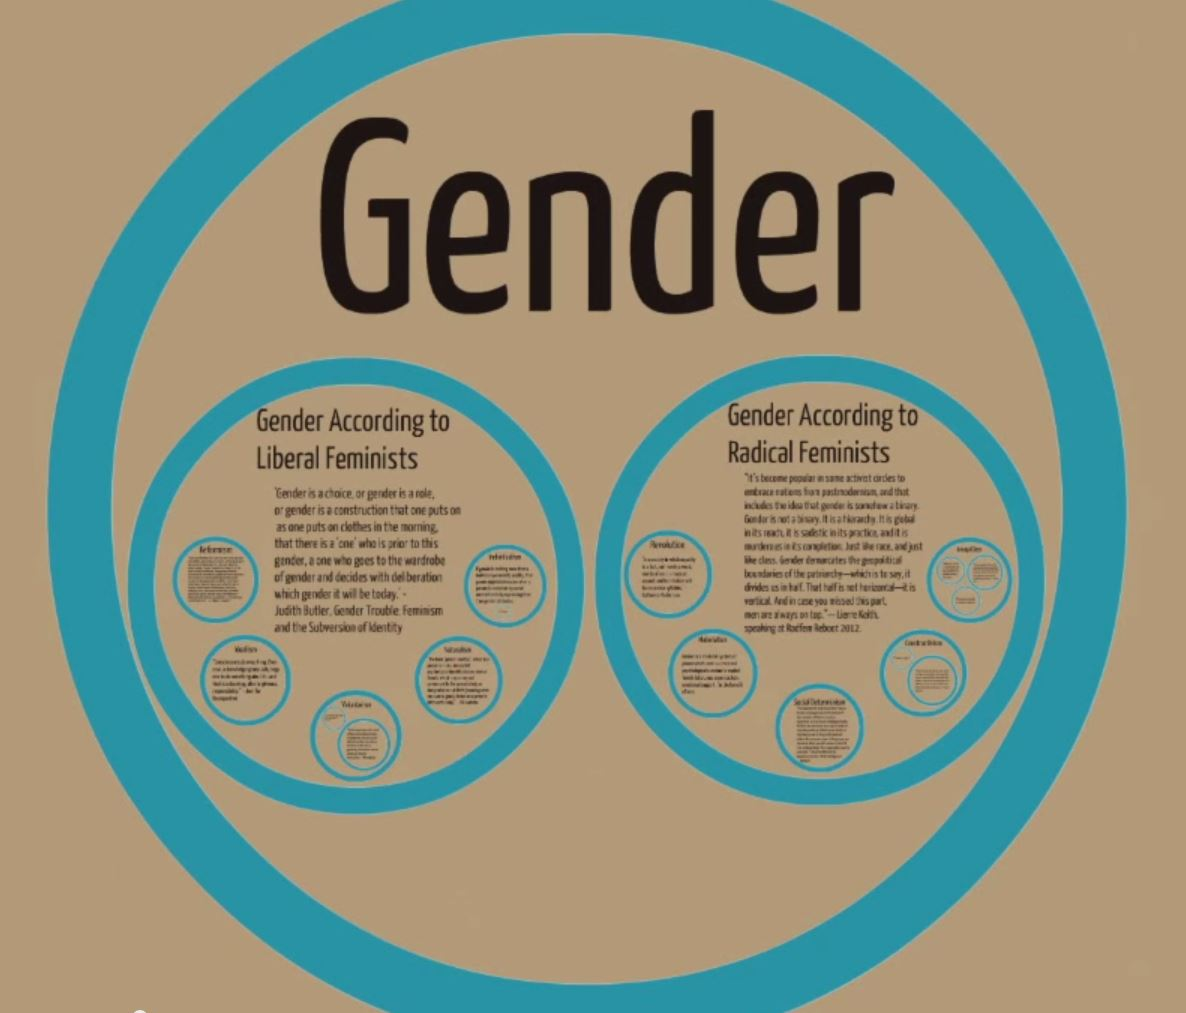 gender movements essay Gender stratification essay this sample gender stratification essay is published for informational purposes only free essays and research papers, are not written by our writers, they are contributed by users, so we are not responsible for the content of this free sample paper.